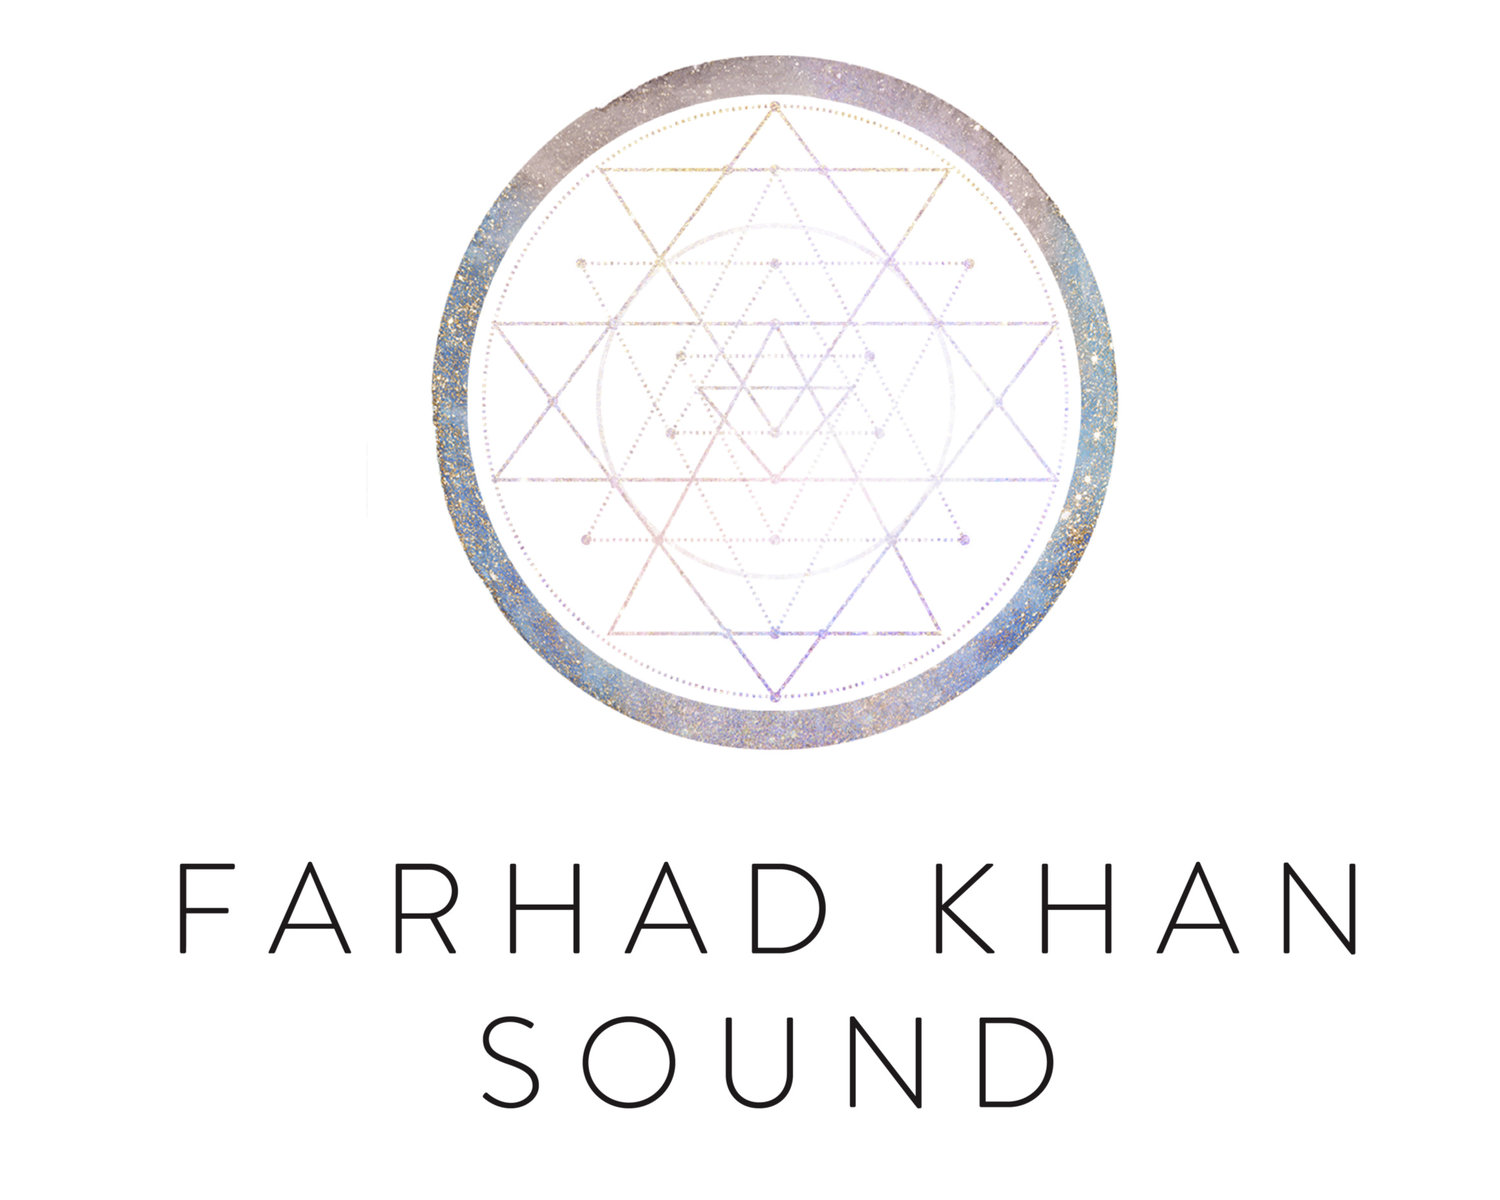 Farhad Khan Sound